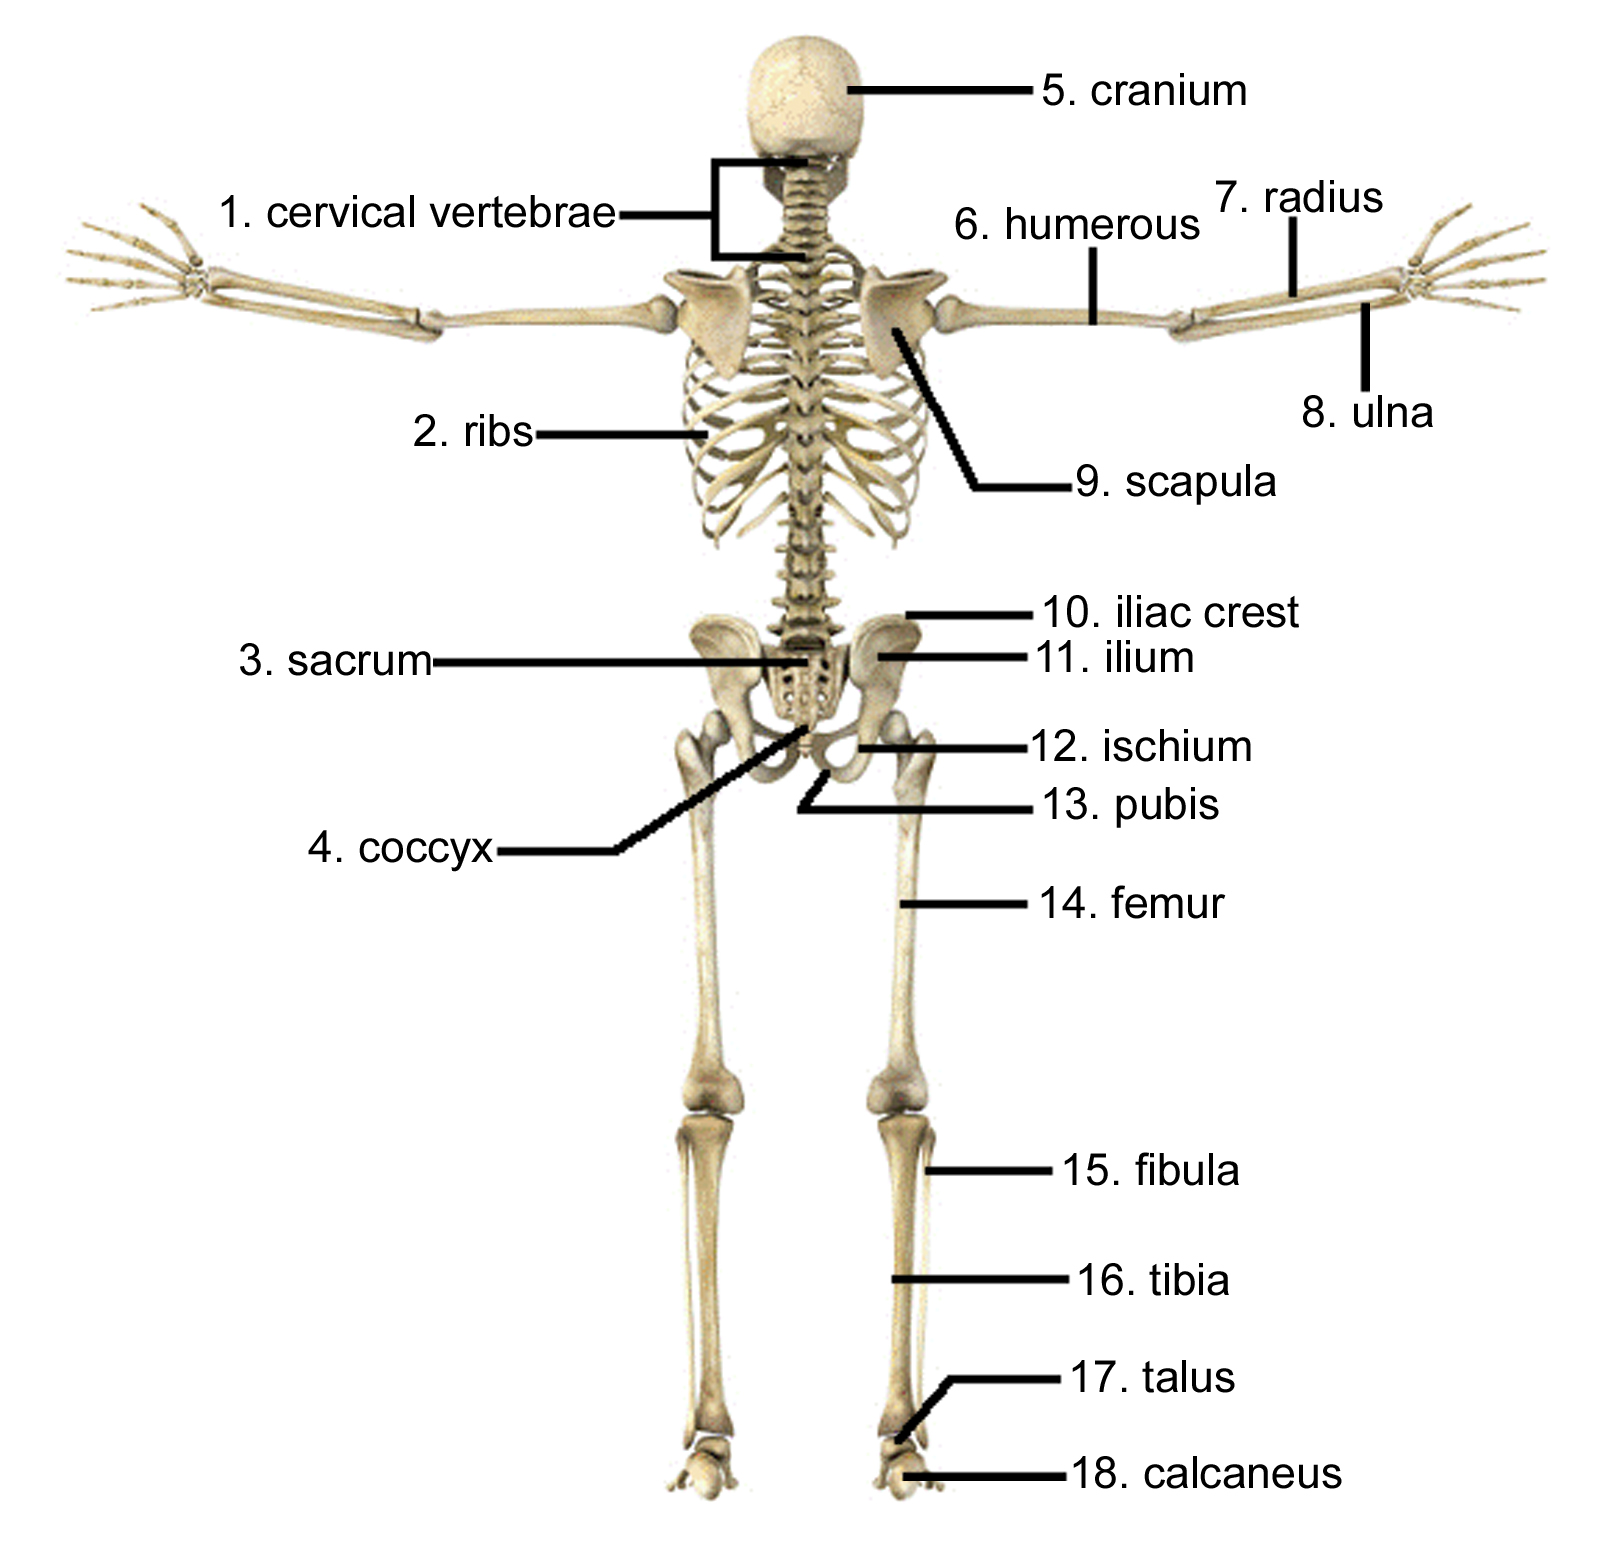 bones of the axial skeleton | The axial skeleton consists of the ...